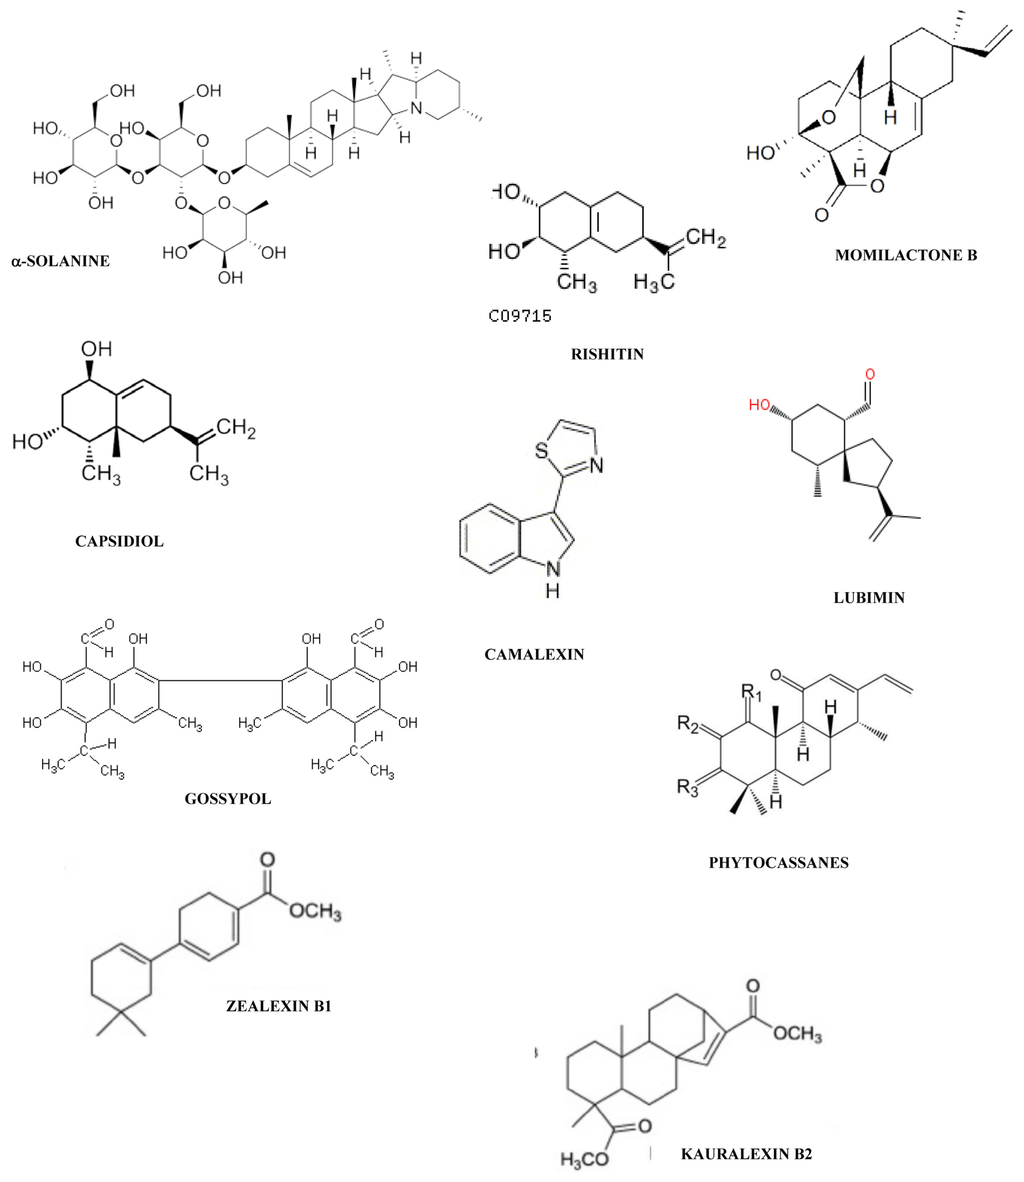 Steroid Biosynthesis Pathway